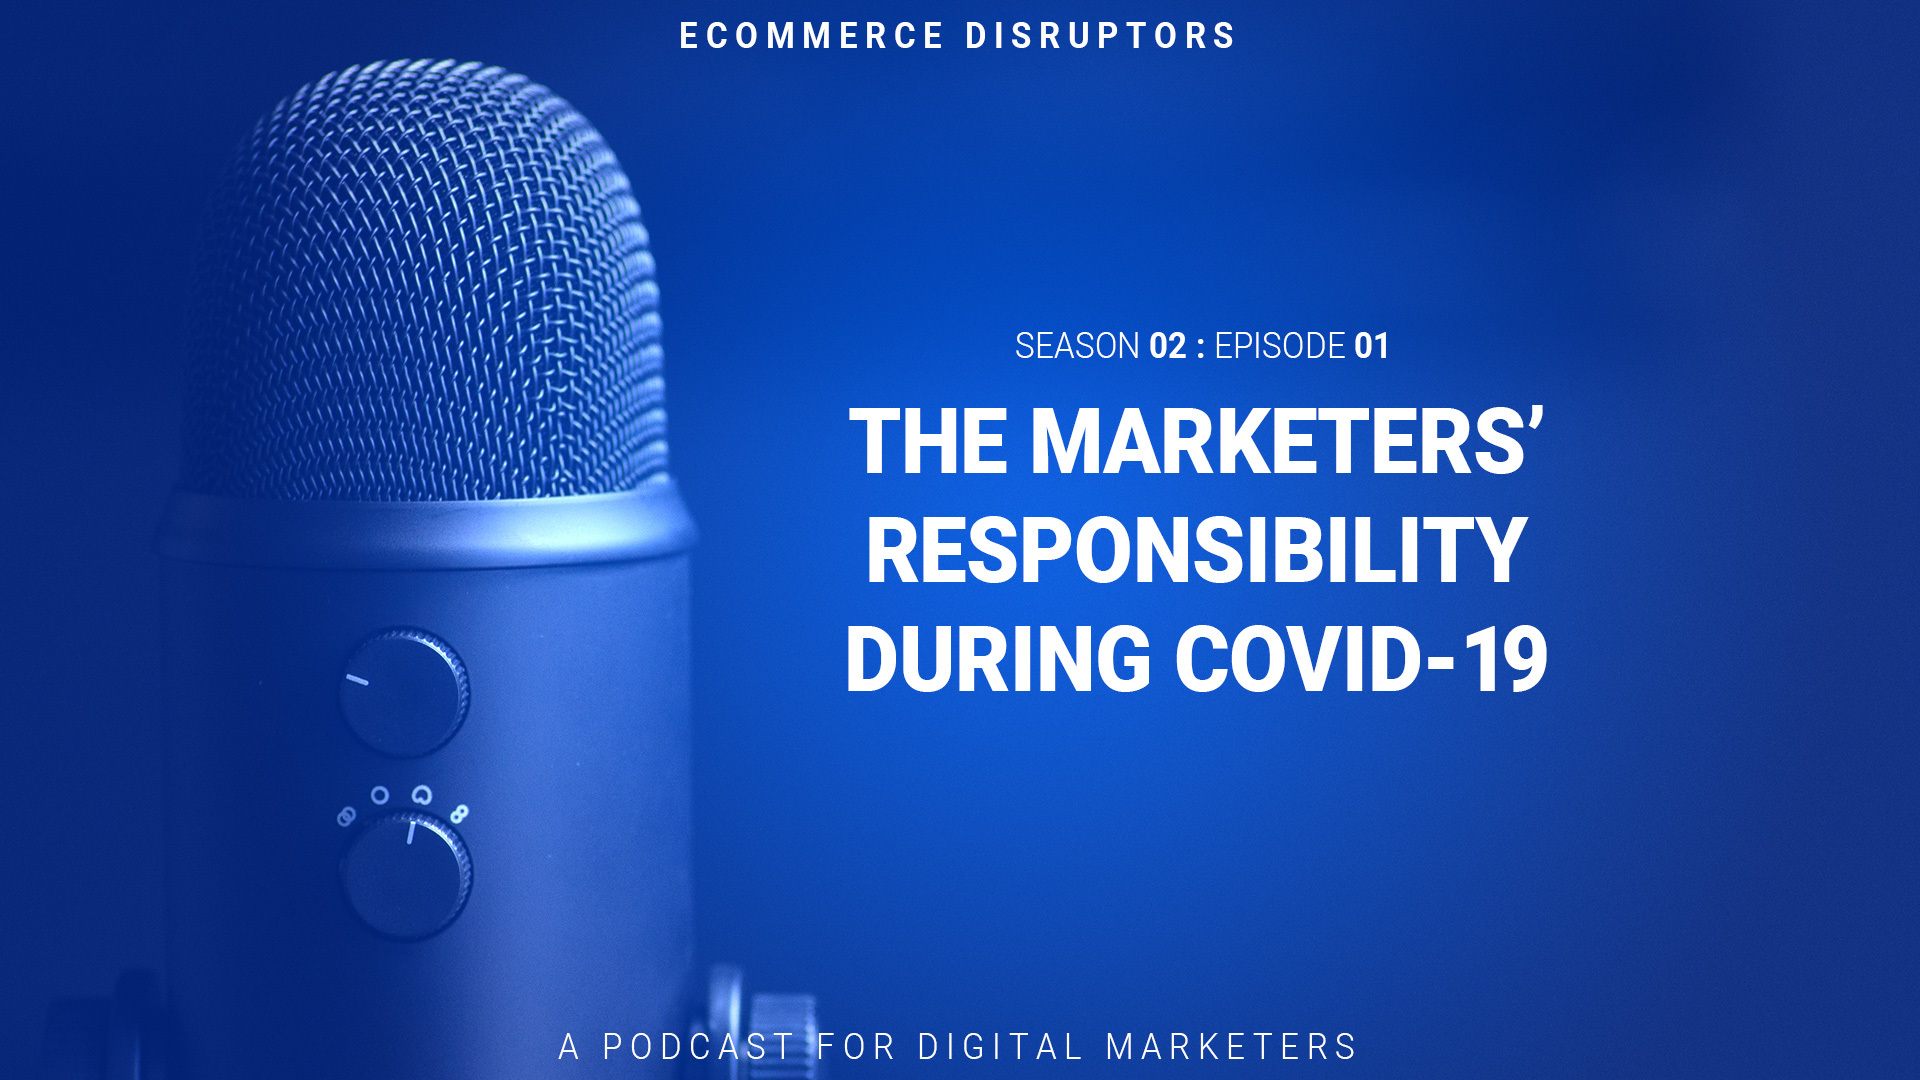 The Marketers' Responsibility During COVID-19